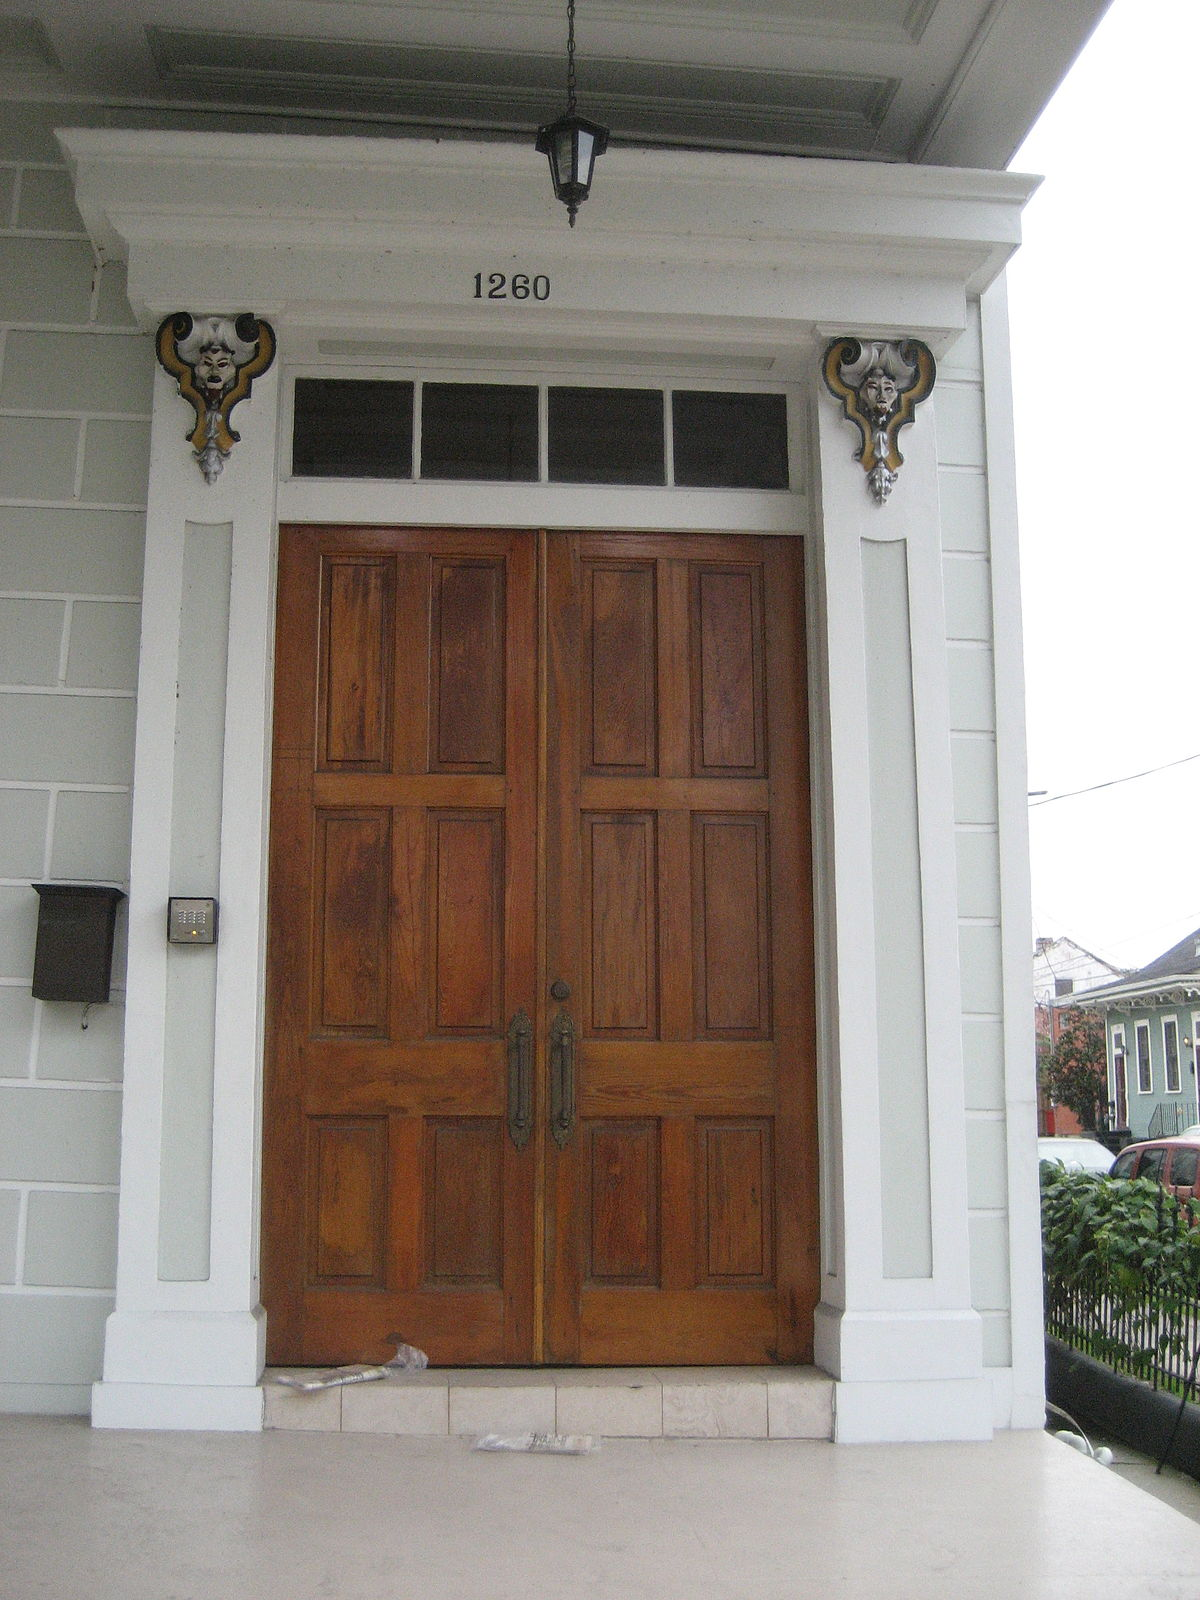 1600 #653F2A Transom (architectural) Wikipedia pic Entry Doors With Transom 40411200